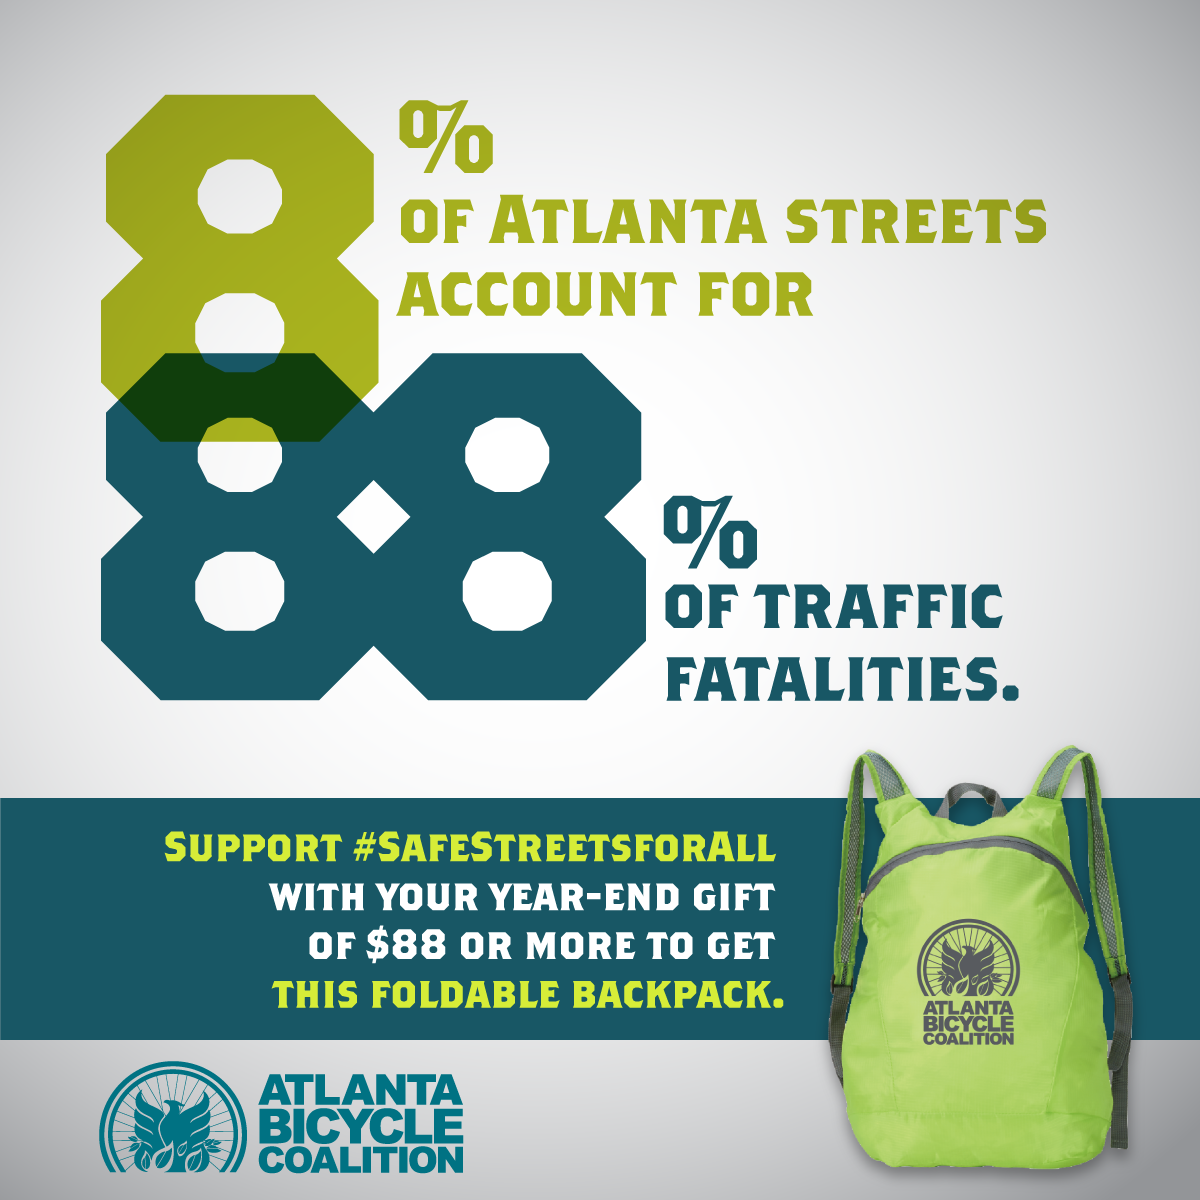 Image: Get a foldable Atlanta Bicycle Coalition backpack with your donation of $88 or more